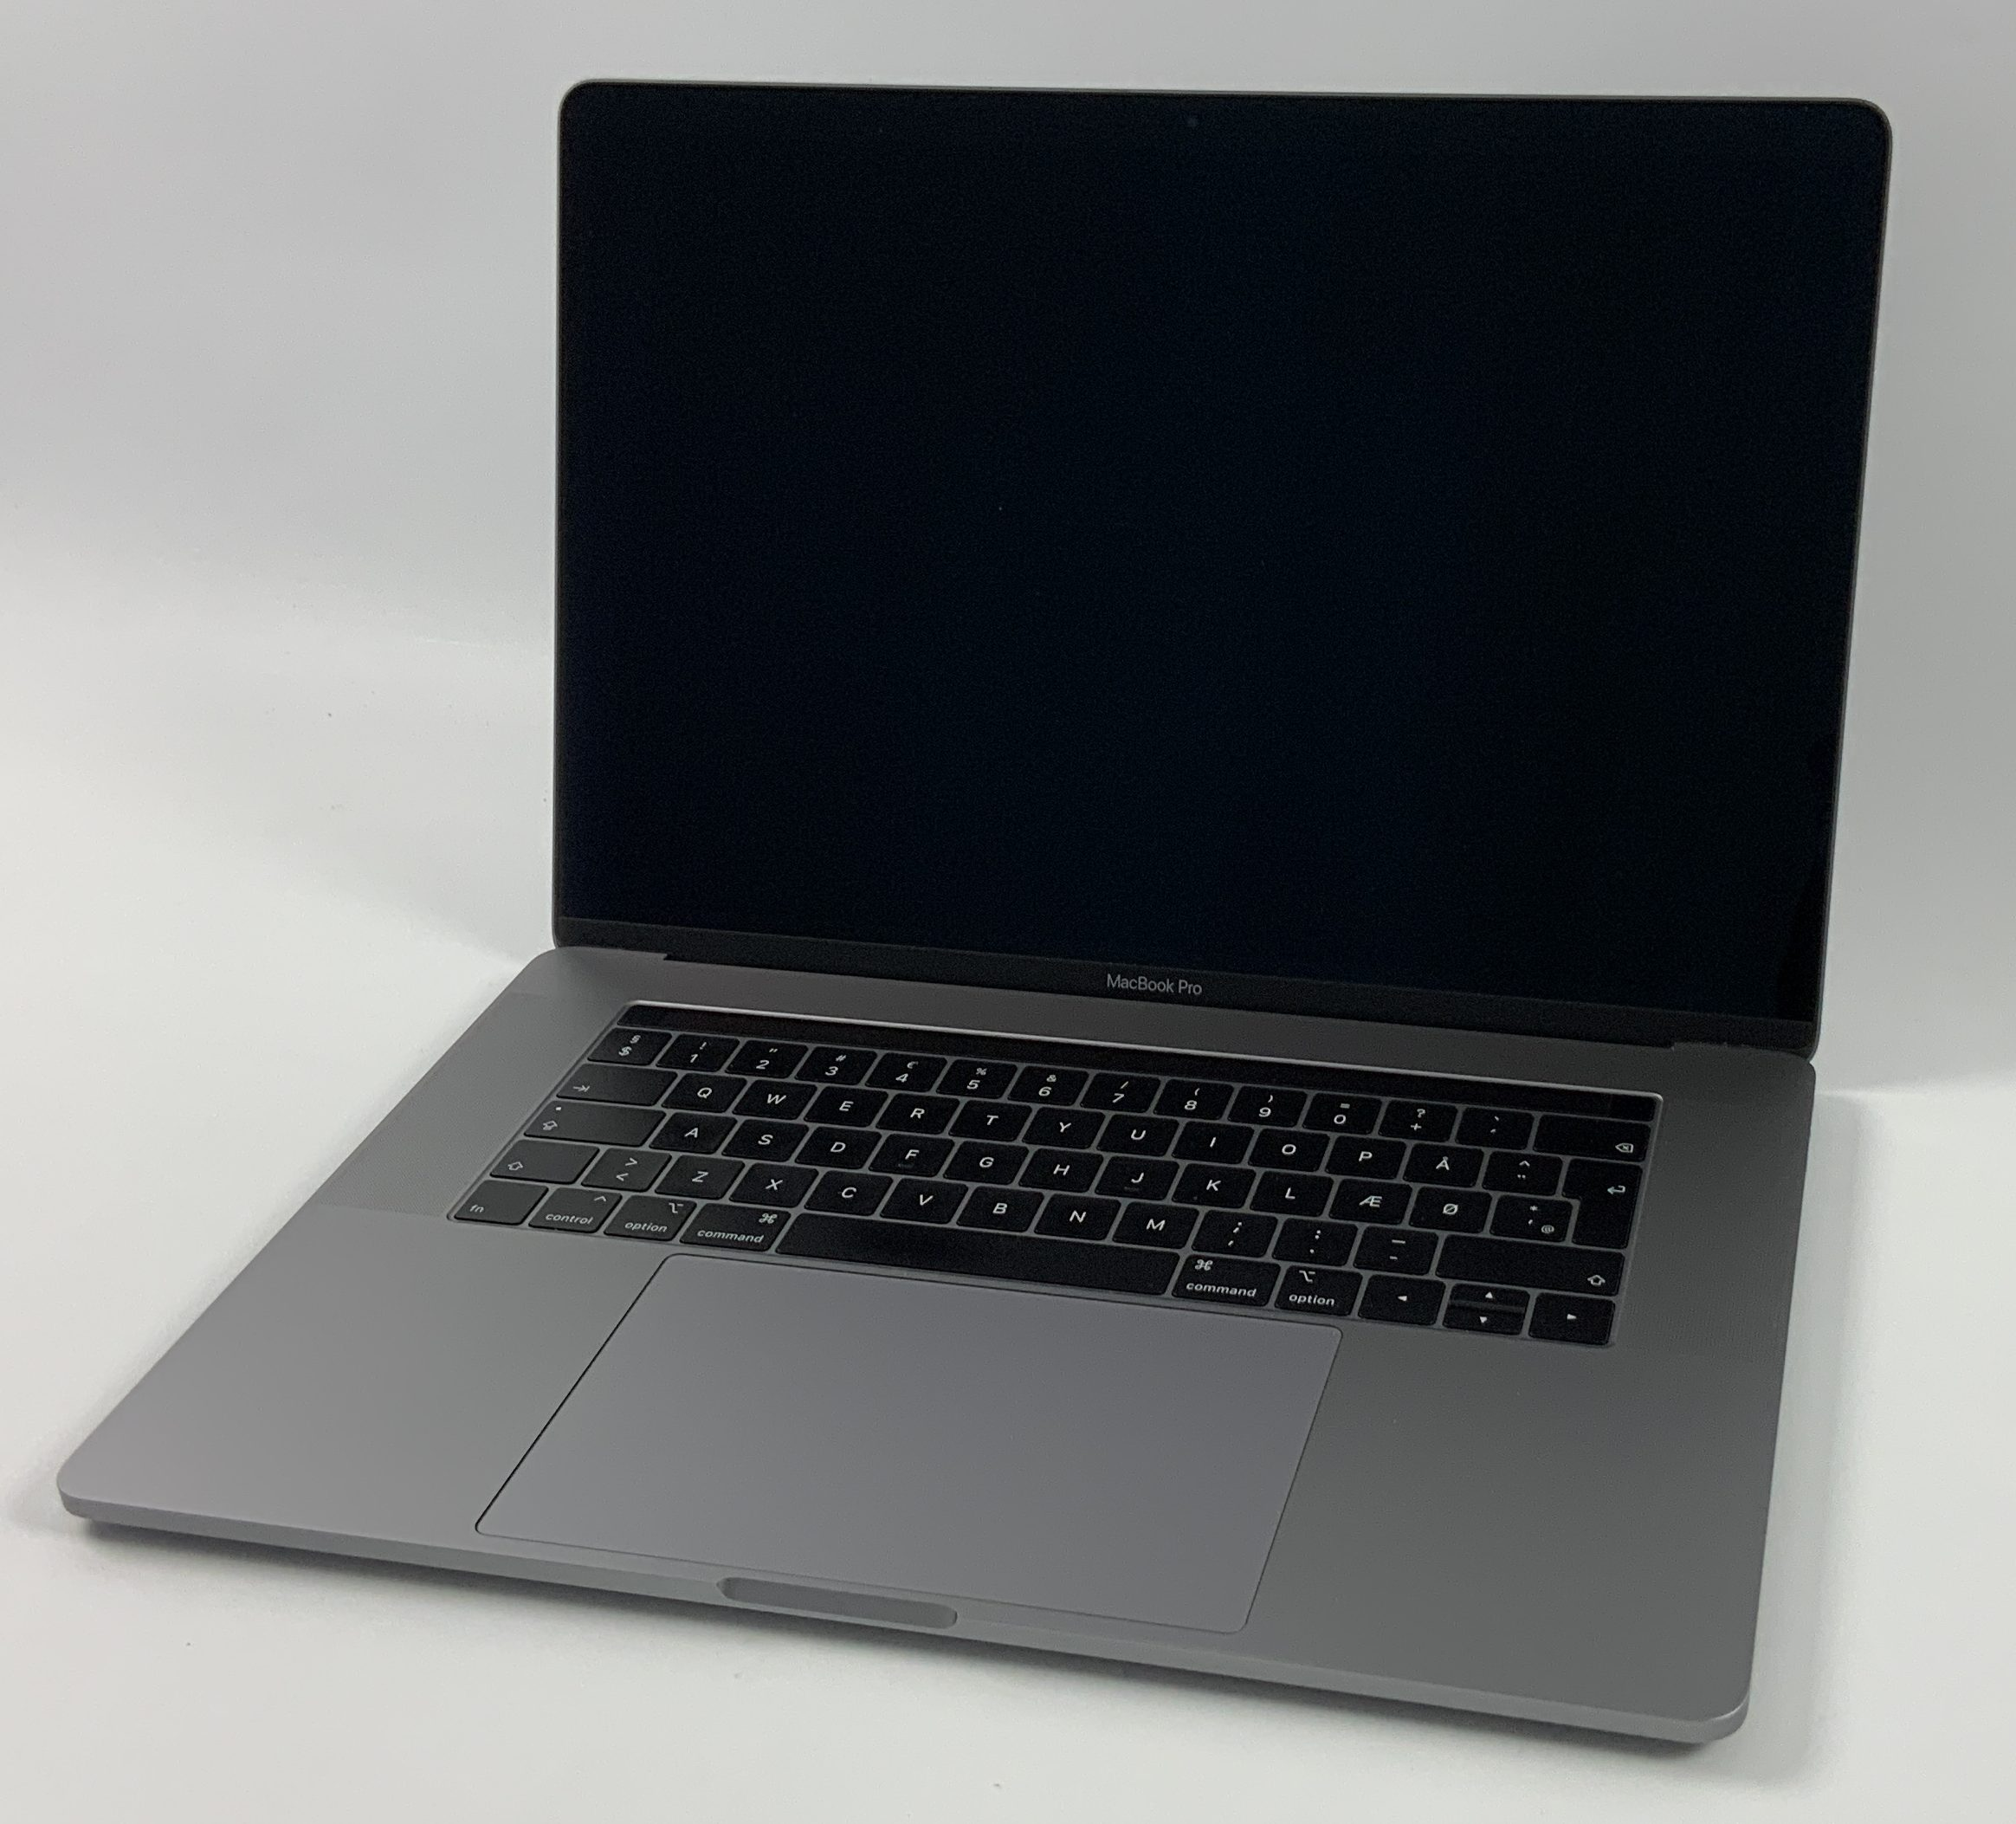 "MacBook Pro 15"" Touch Bar Mid 2018 (Intel 6-Core i7 2.6 GHz 16 GB RAM 512 GB SSD), Space Gray, Intel 6-Core i7 2.6 GHz, 16 GB RAM, 512 GB SSD, image 1"